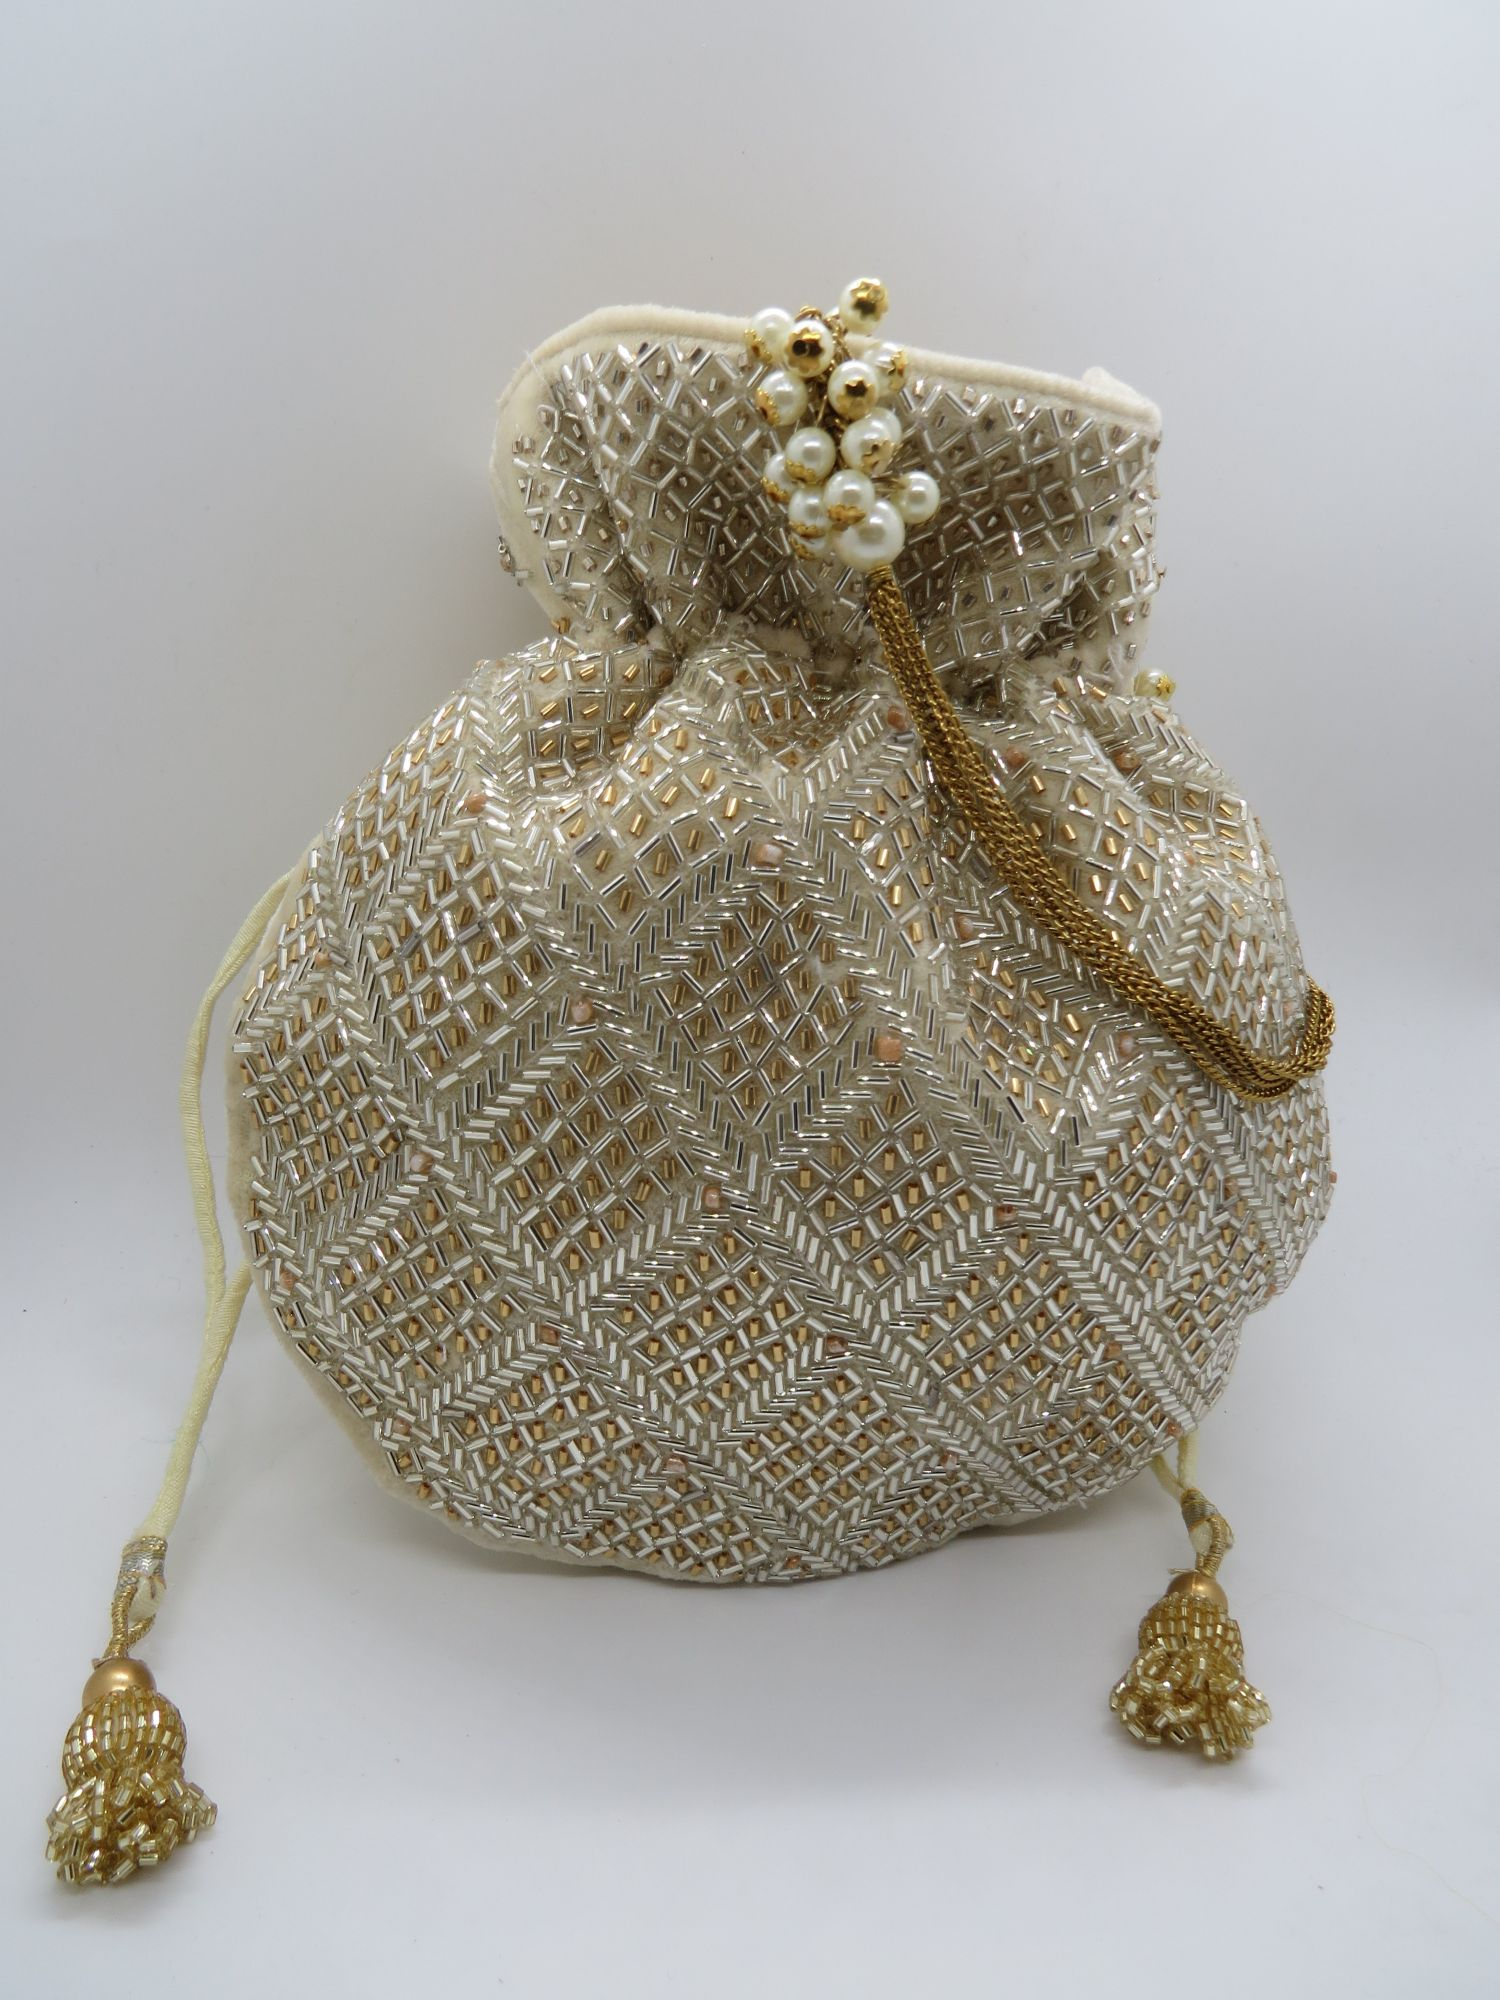 Wedding Potli, Bridal Bag, Couture Purse, Wedding Bag with Bead Katdana Work, Bridemaids Gift, Indian Potli Bag